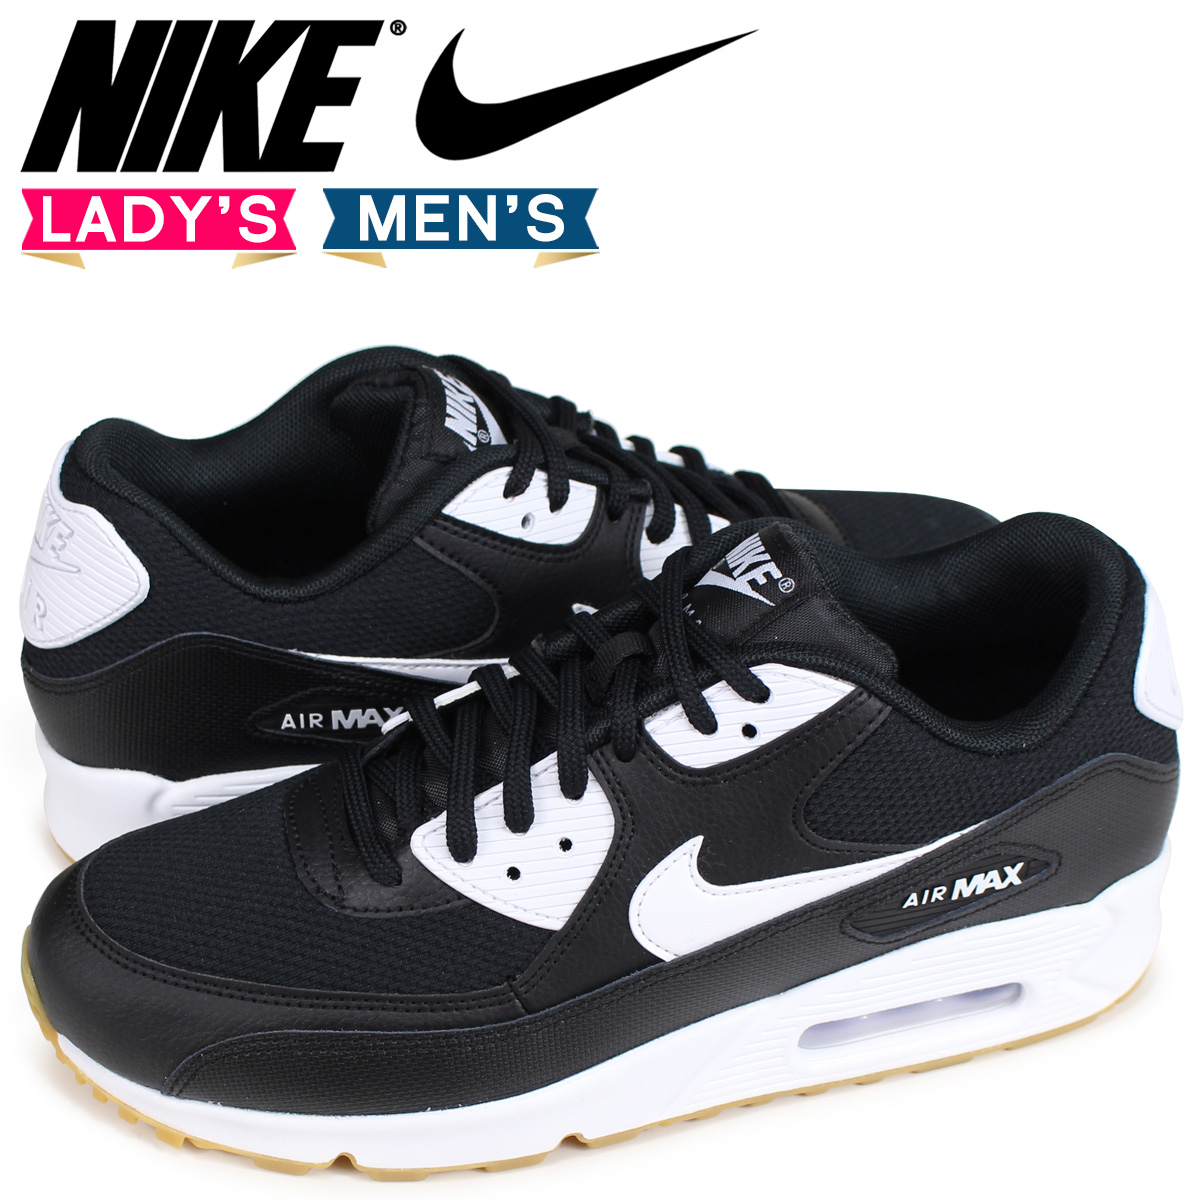 Nike NIKE Air Max 90 lady's men's sneakers WMNS AIR MAX 90 325,213 055 black